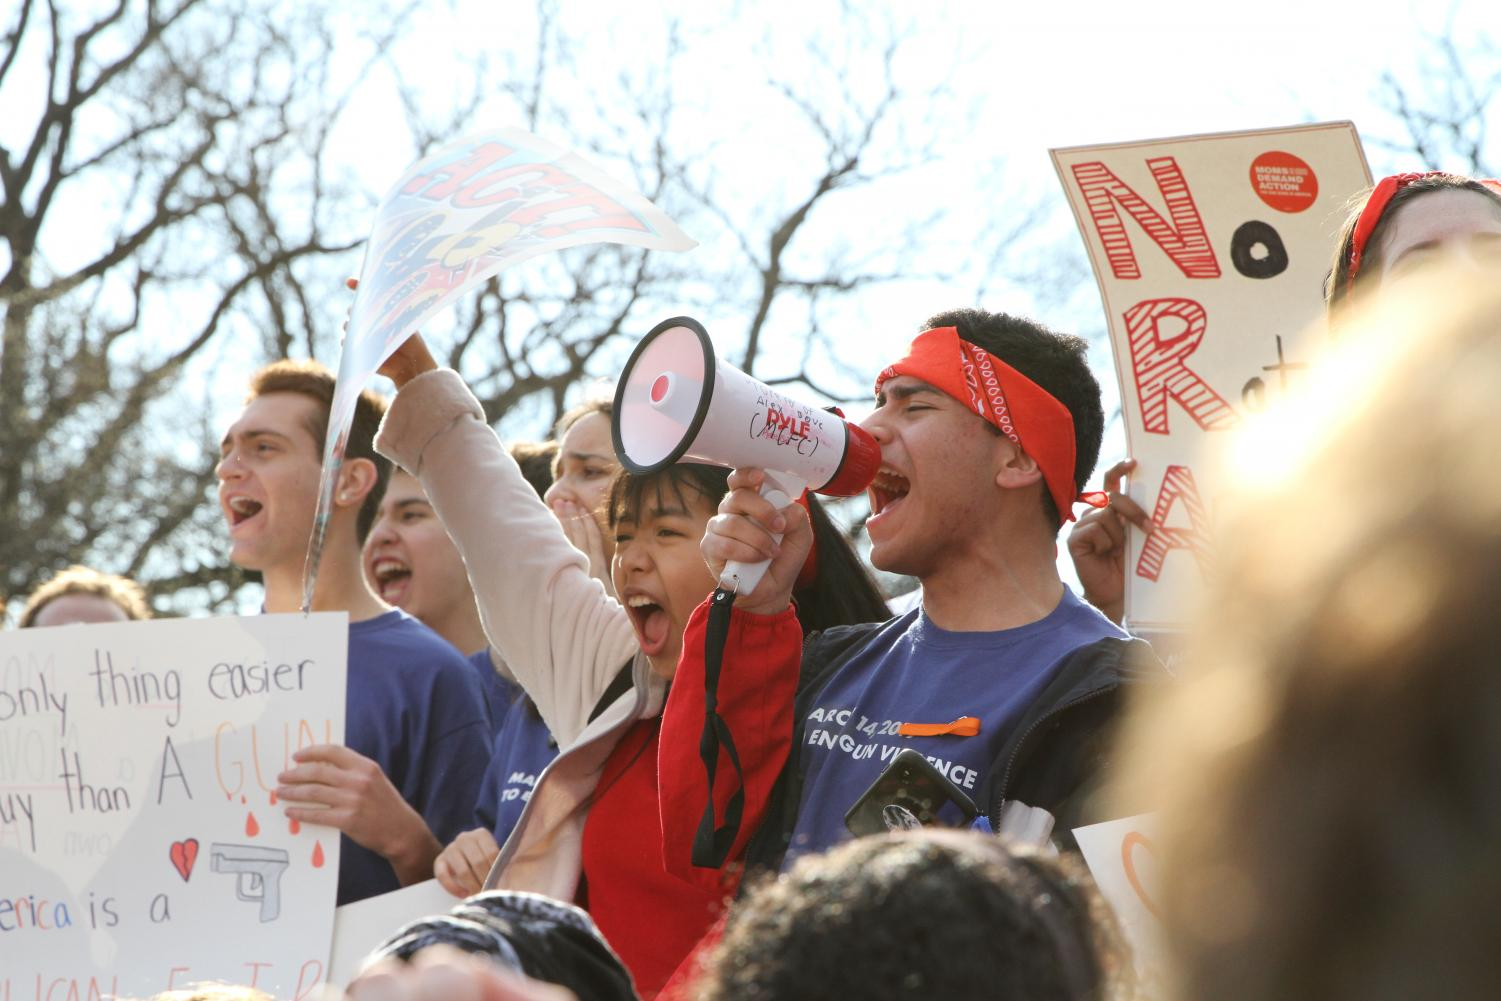 MoCo Students for Change members led thousands of local middle and high school students in a walkout Mar. 14. The walkout was in support of a bill in the Senate that would require background checks for all gun purchases.